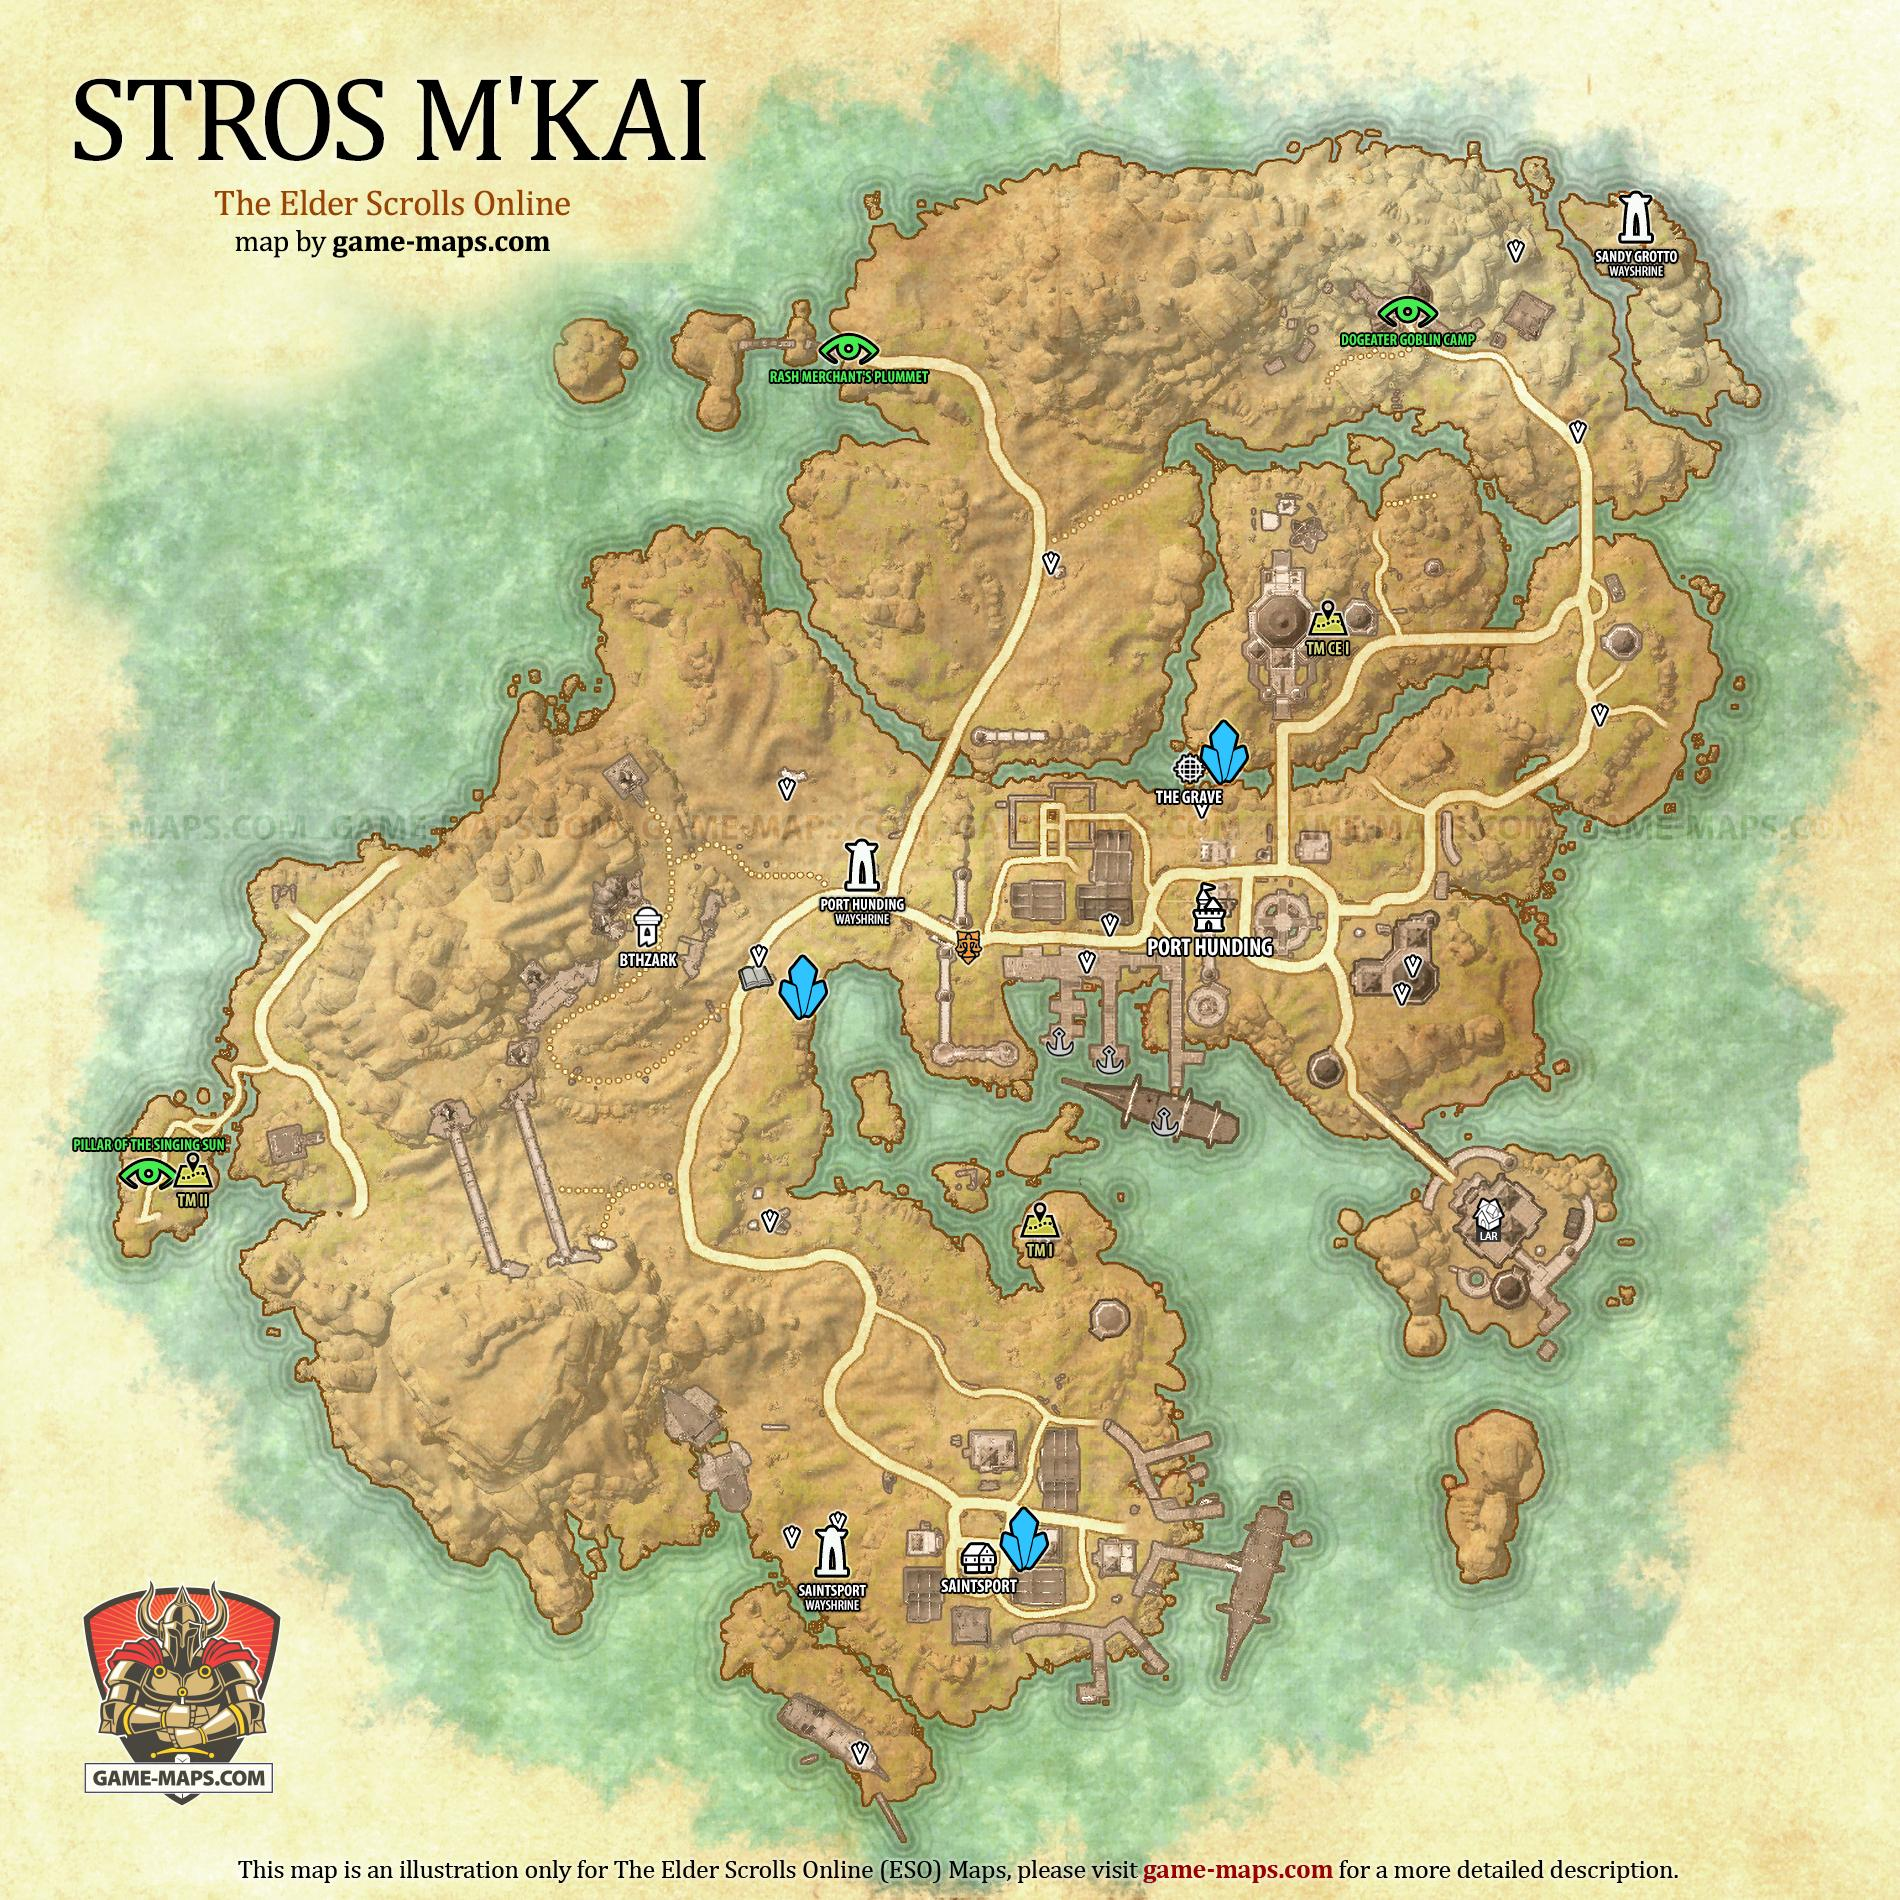 Eso Interactive Map Stros M'Kai Map   The Elder Scrolls Online | game maps.com